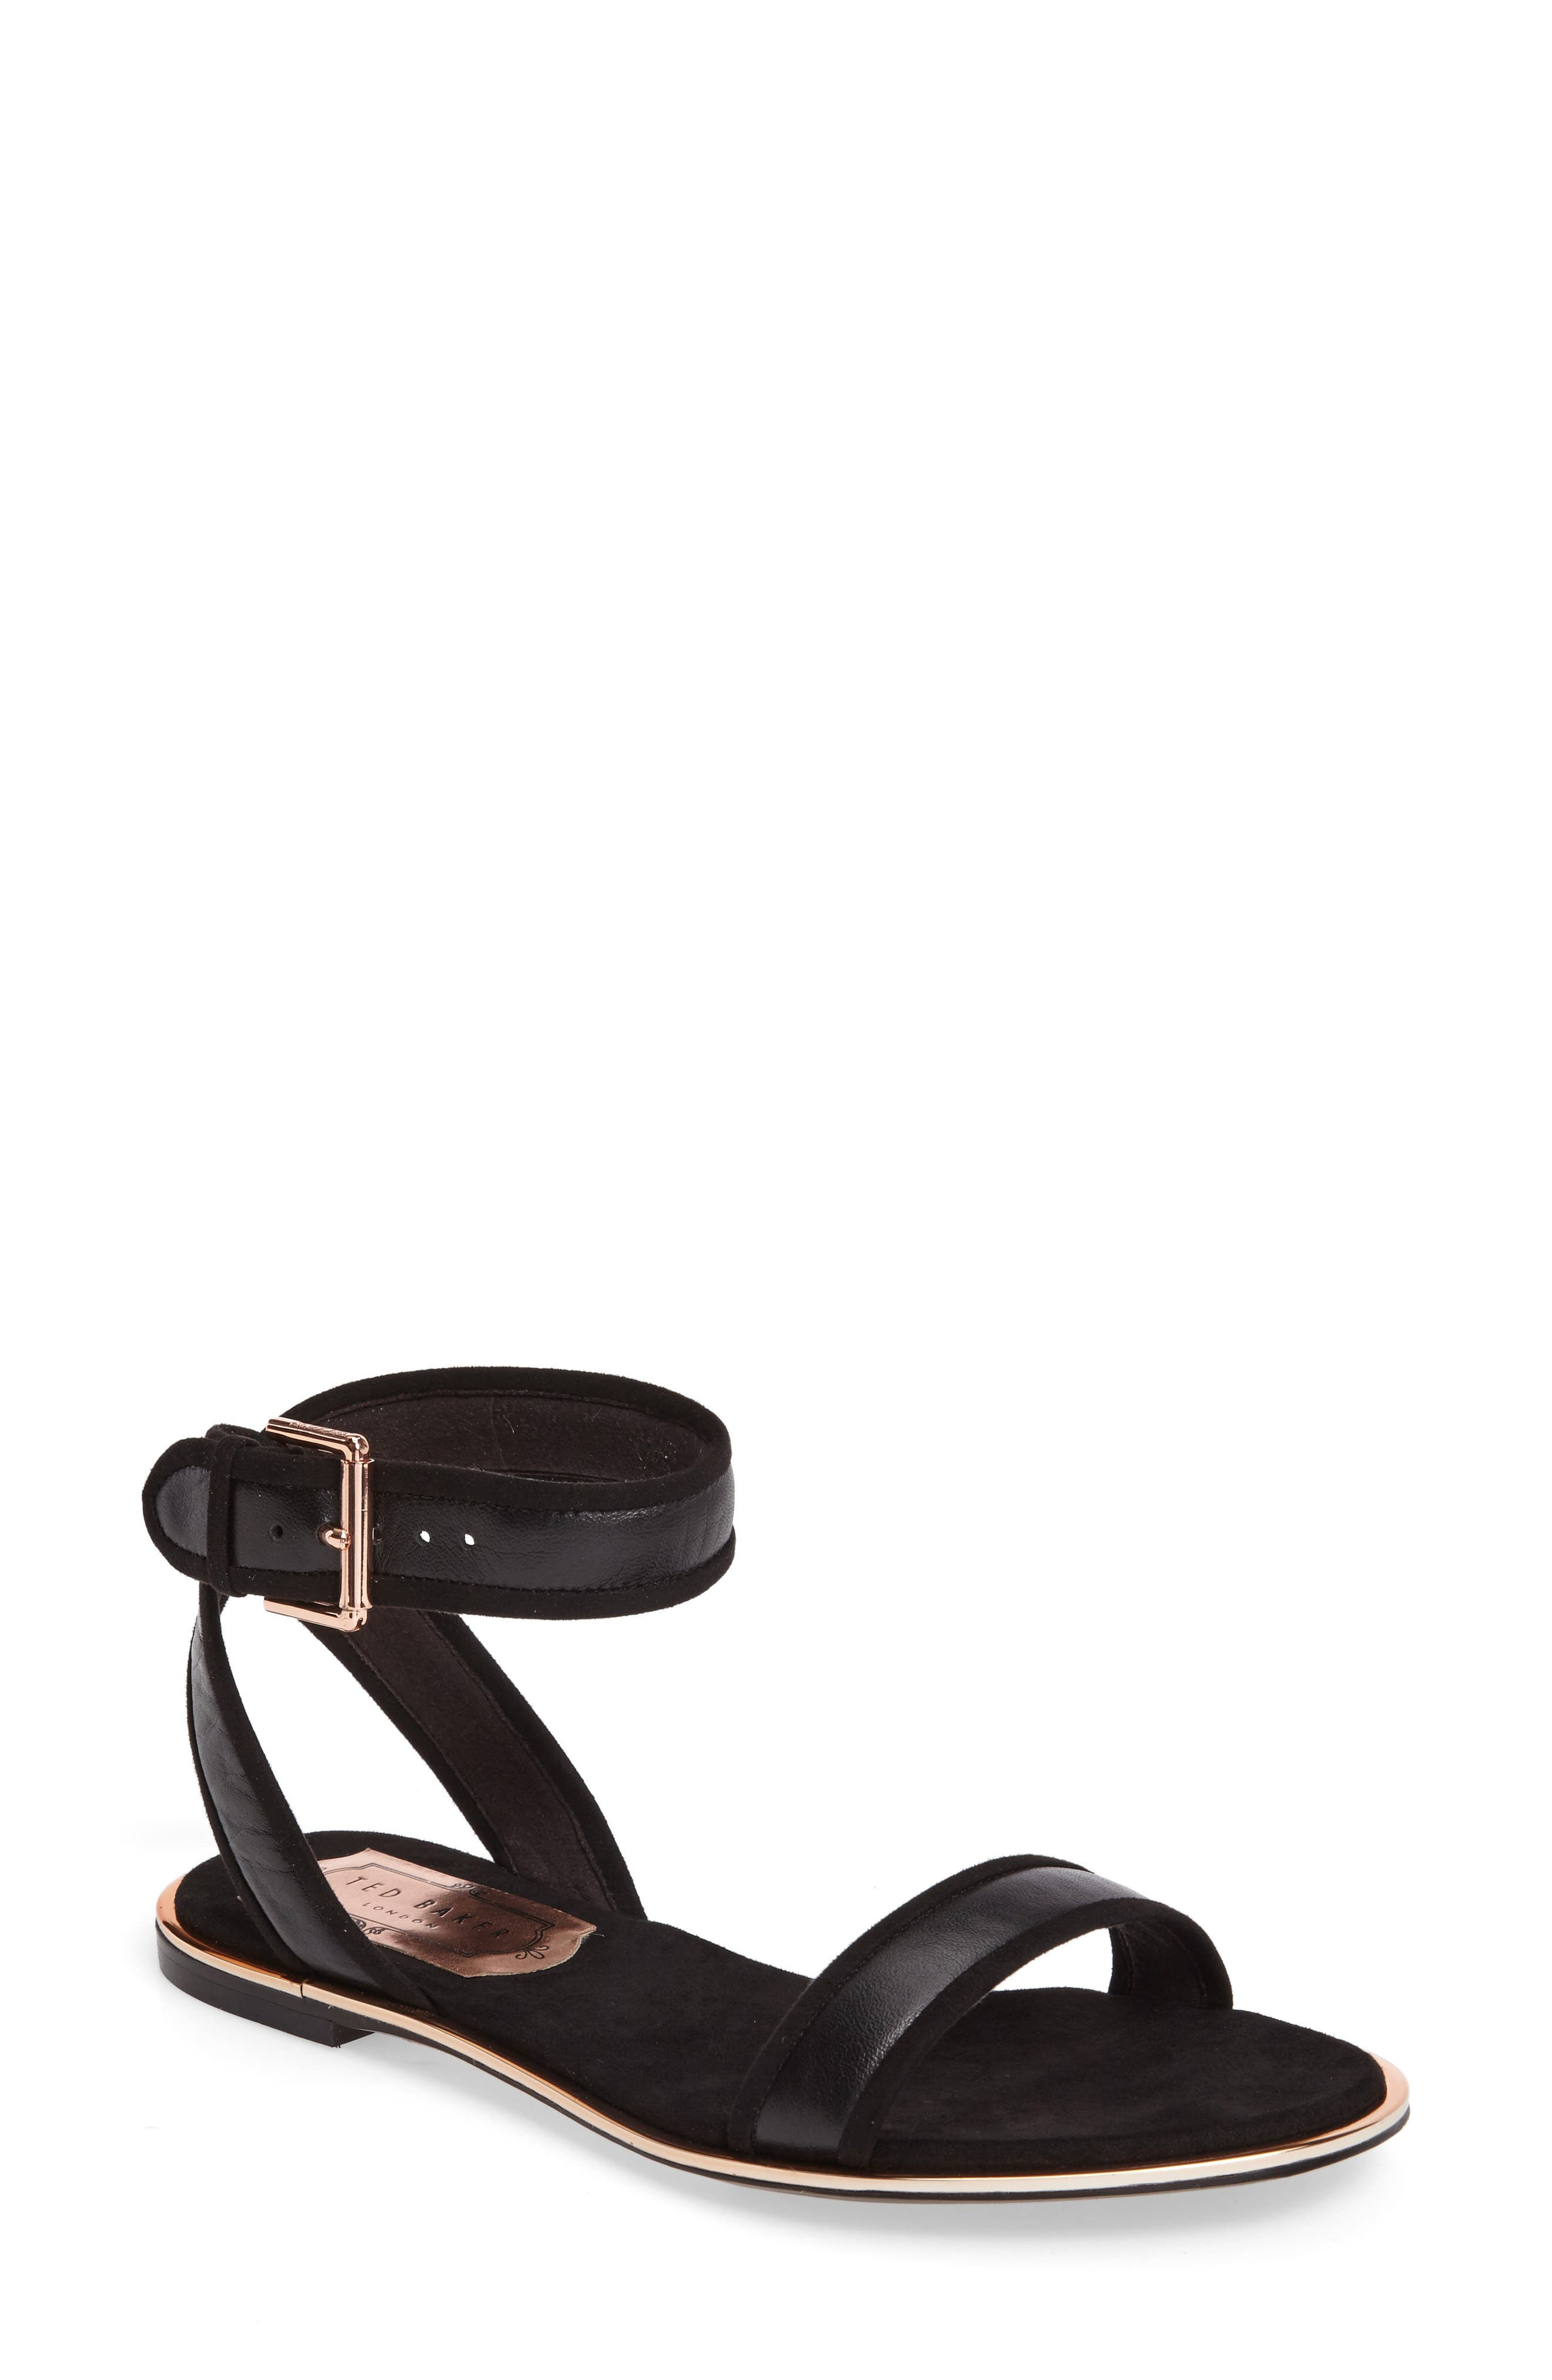 Ted Baker Alella Ankle Strap Sandal,                             Main thumbnail 1, color,                             Black Leather